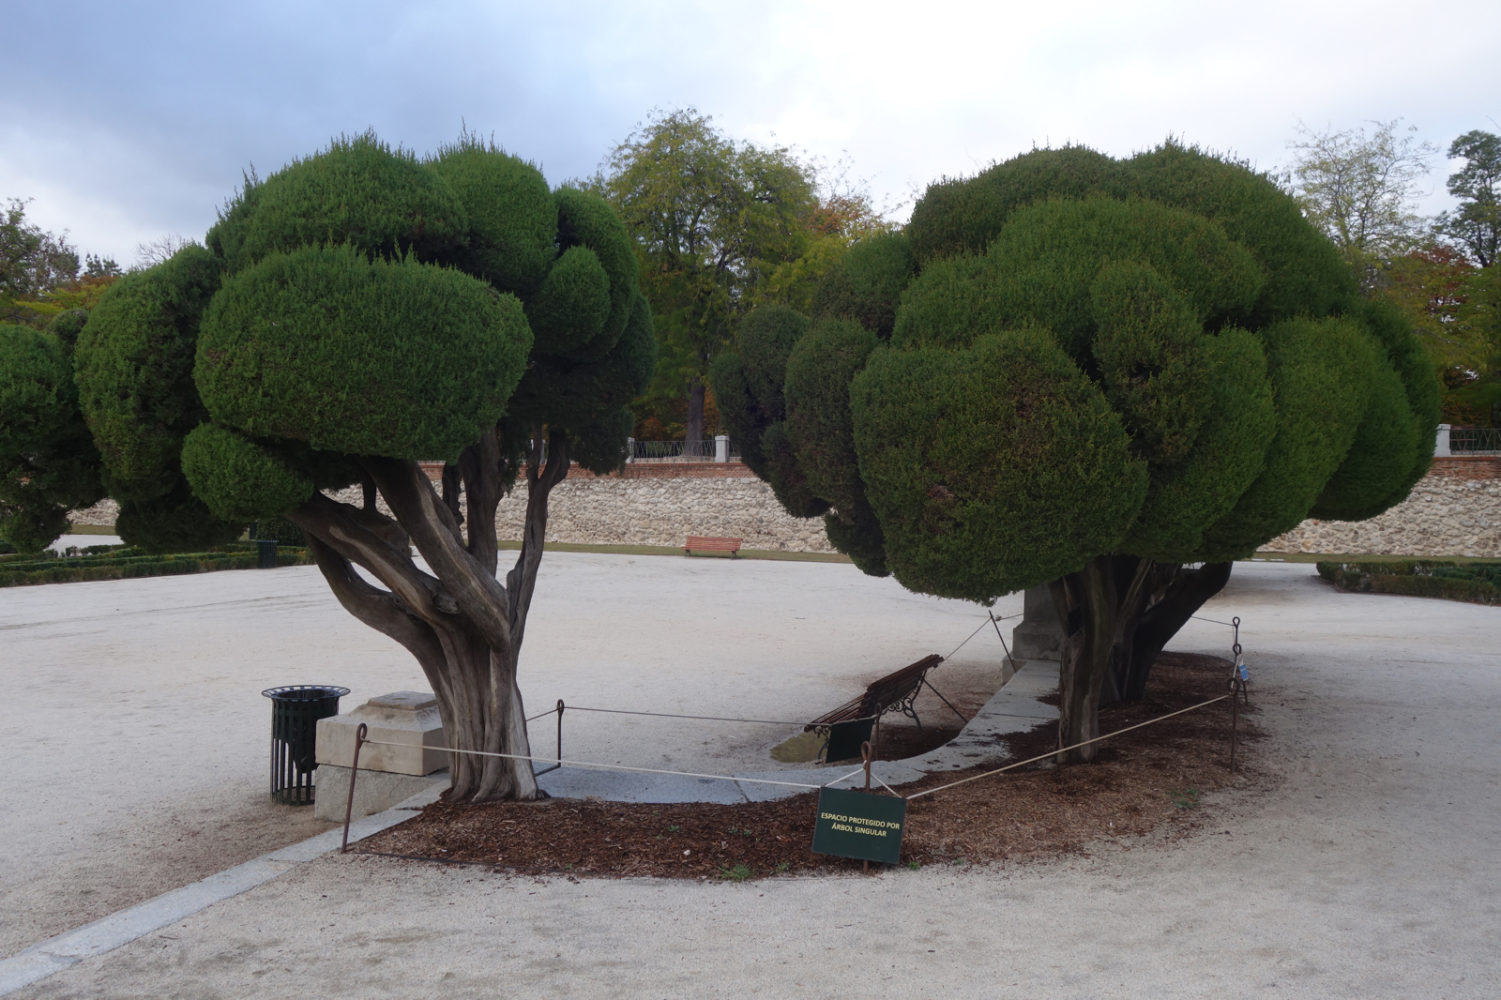 Trees in Retiro Park, Madrid.